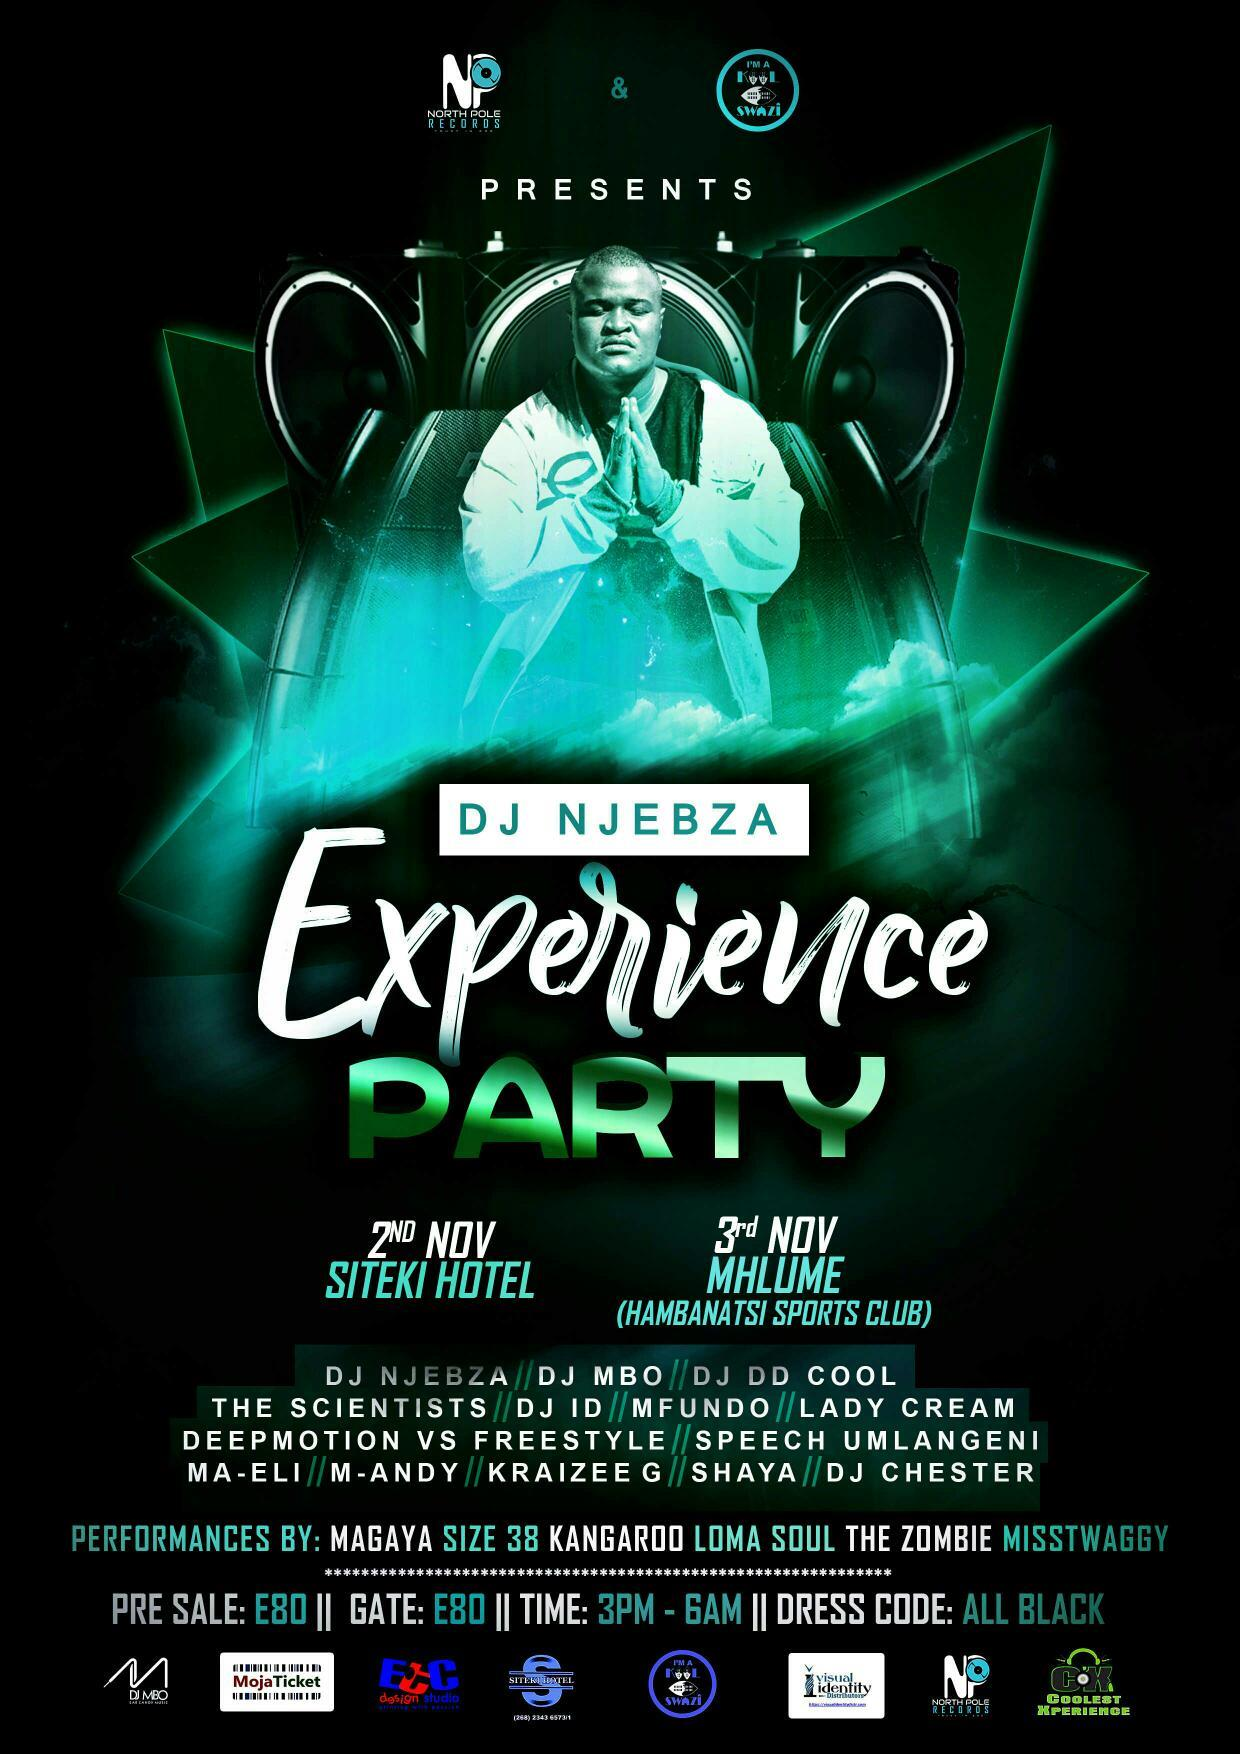 DJ Njebza Experience Party